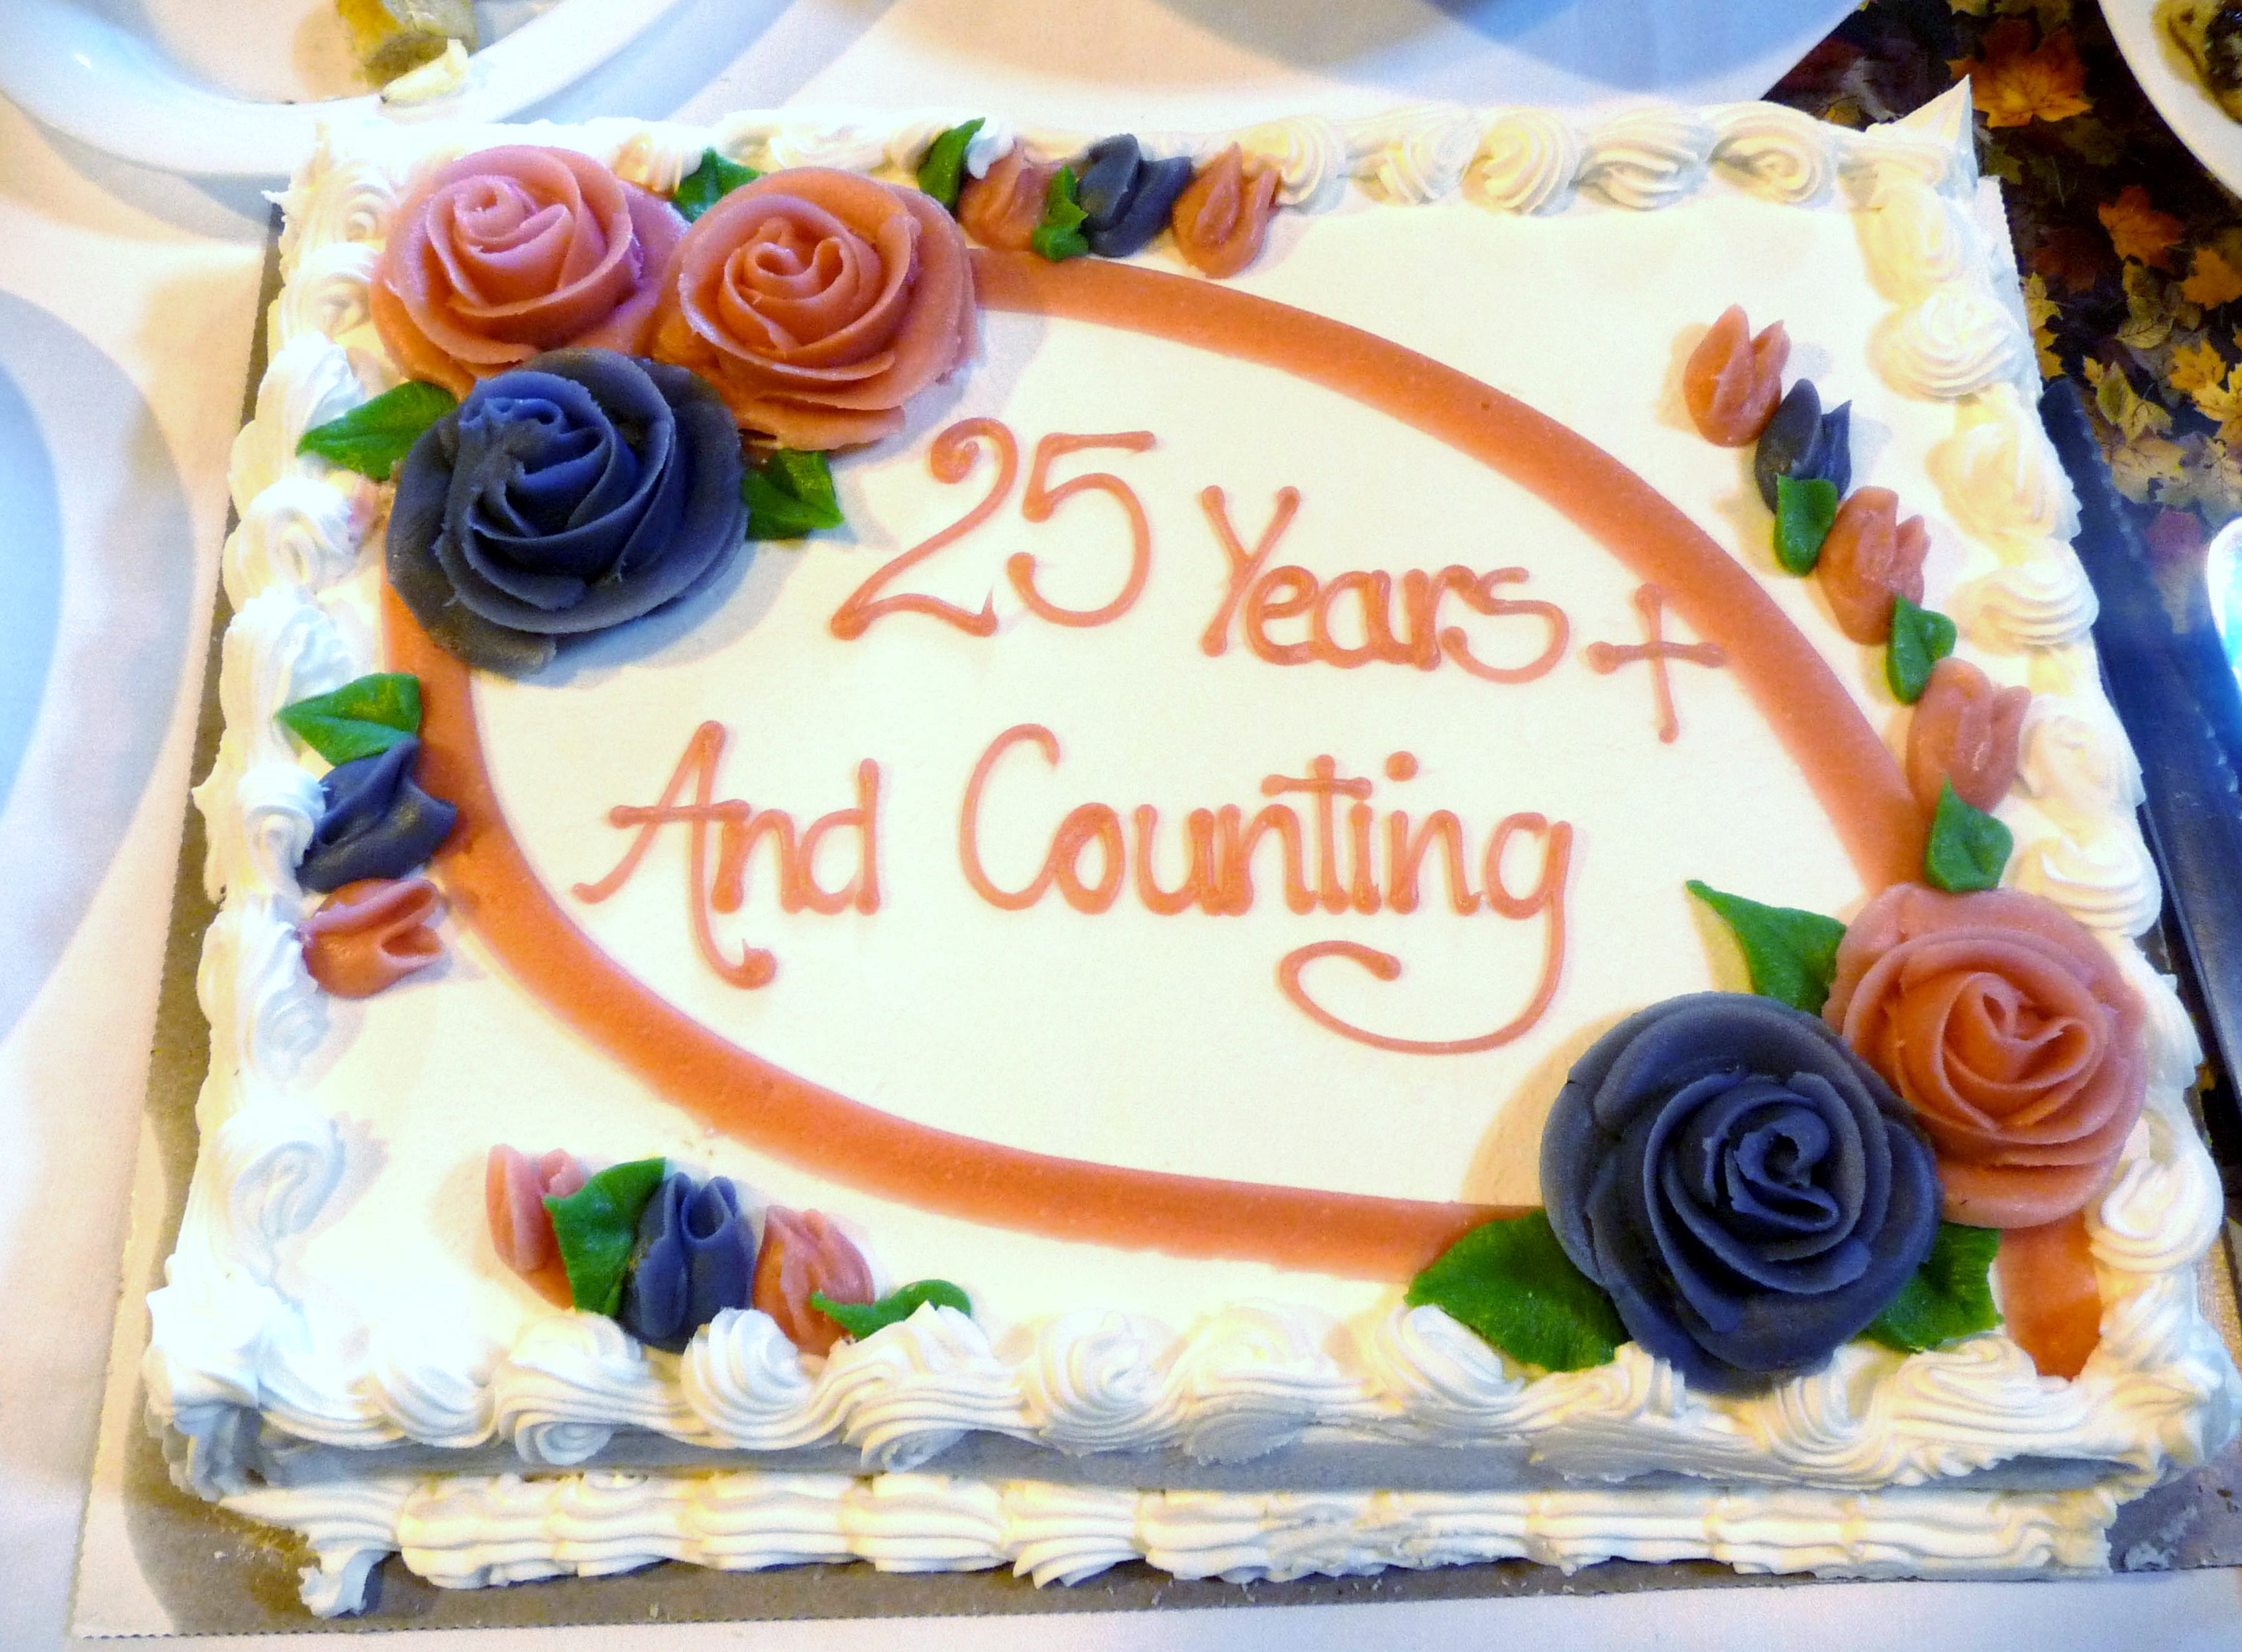 at our  September Tea Party 2014 we had a celebration cake especially for all our members who had been with MEG for 25 years or more